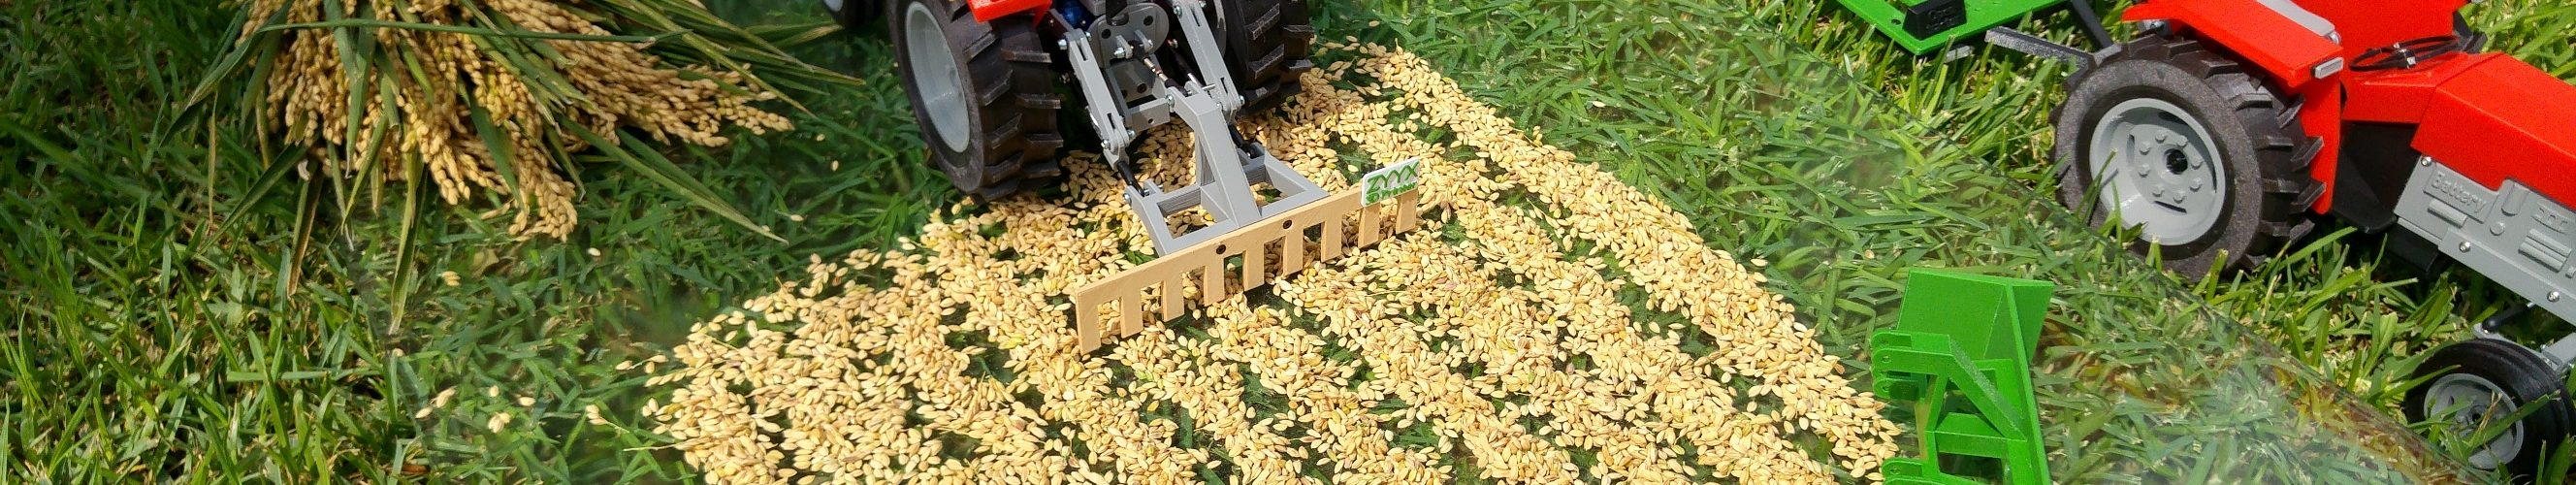 openrc-tractor-release-rice-2